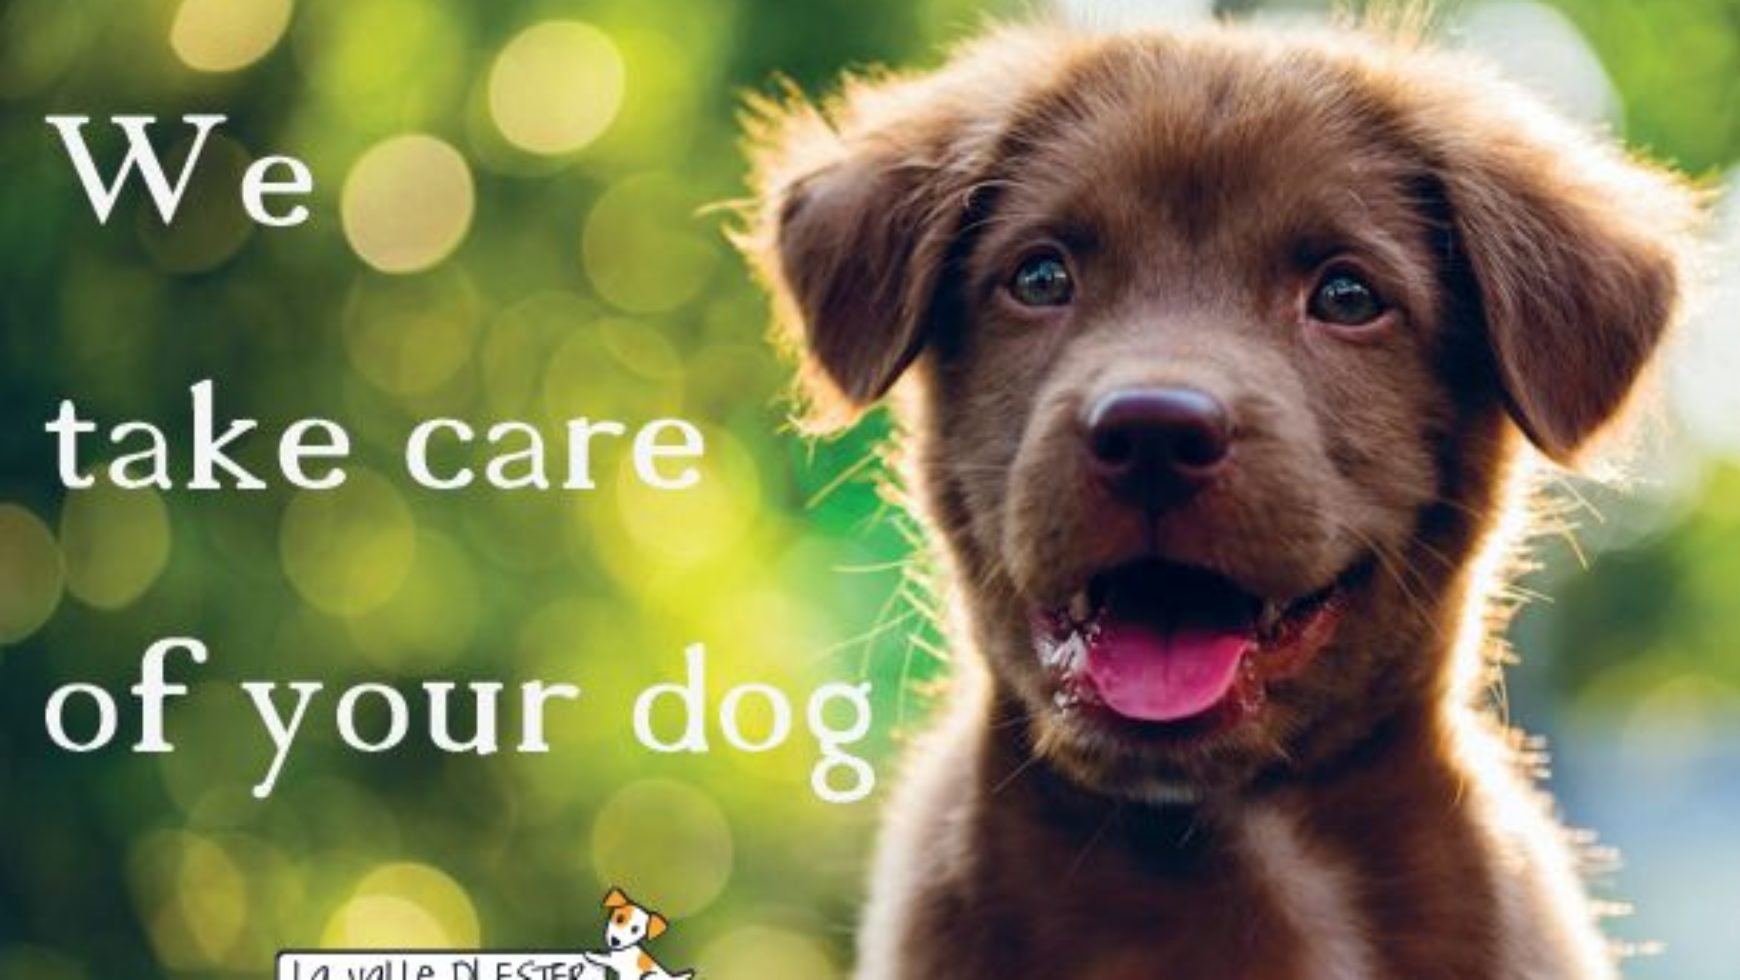 WE TAKE CARE OF YOUR DOG!